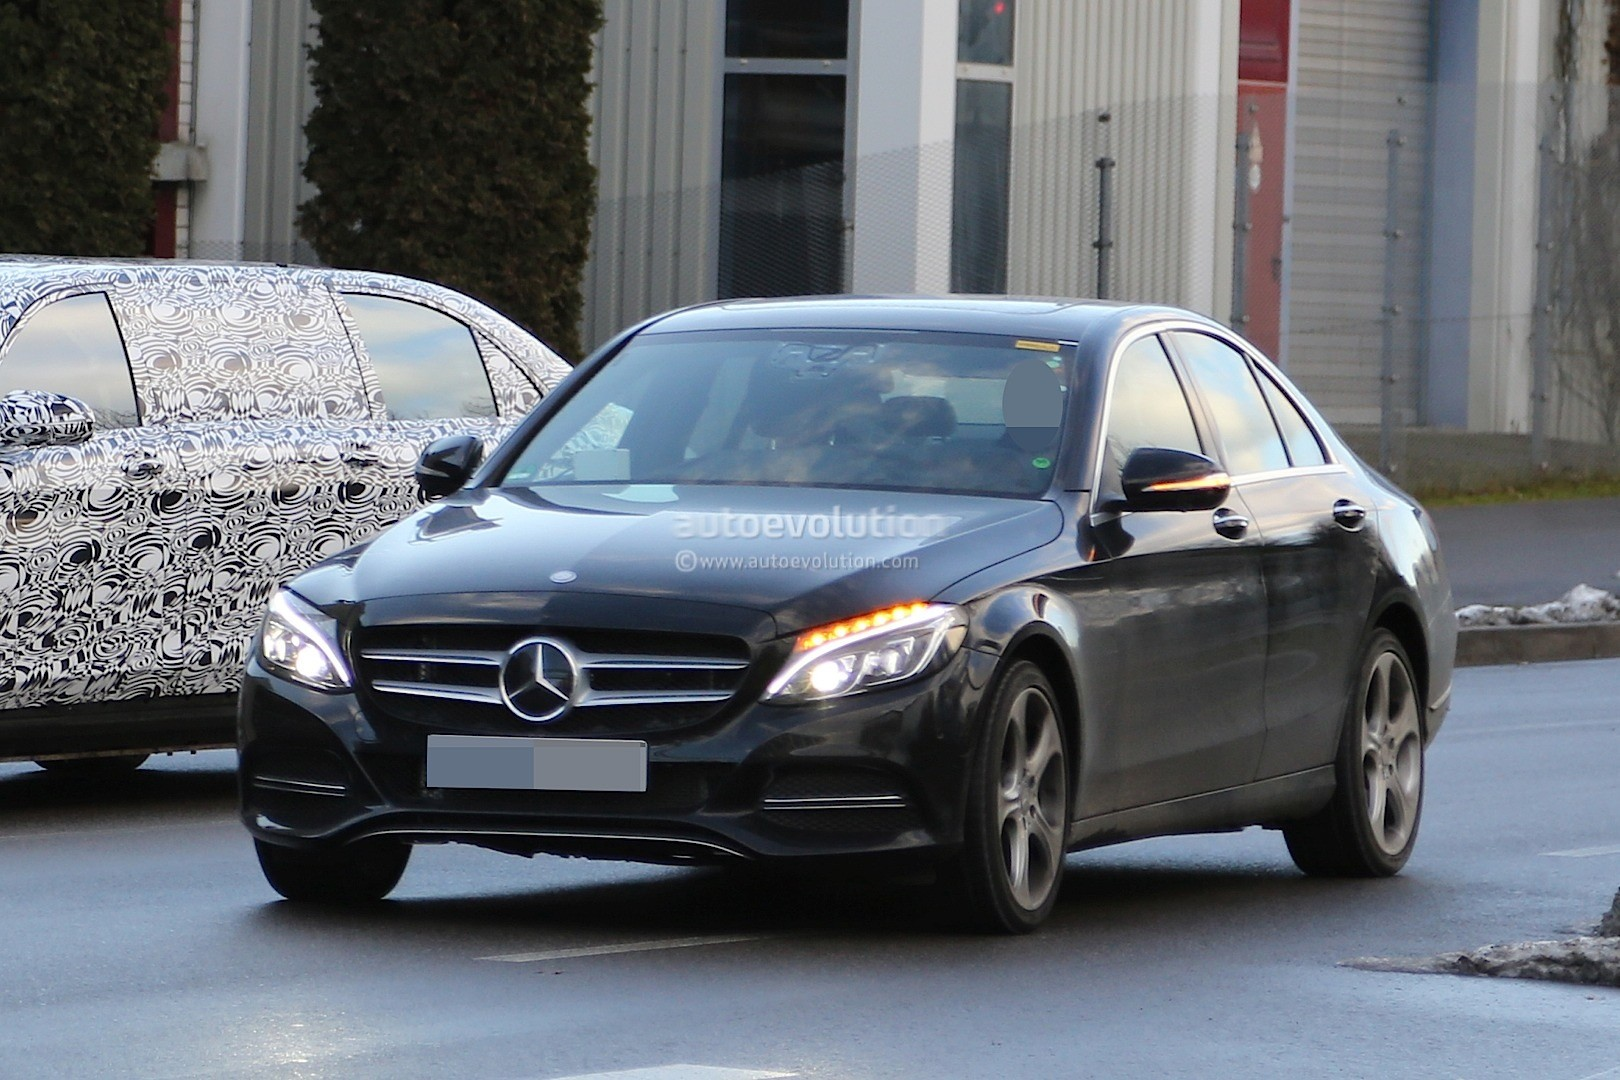 2018 mercedes c class facelift interior spyshots s class digital dashboard could bow in c. Black Bedroom Furniture Sets. Home Design Ideas